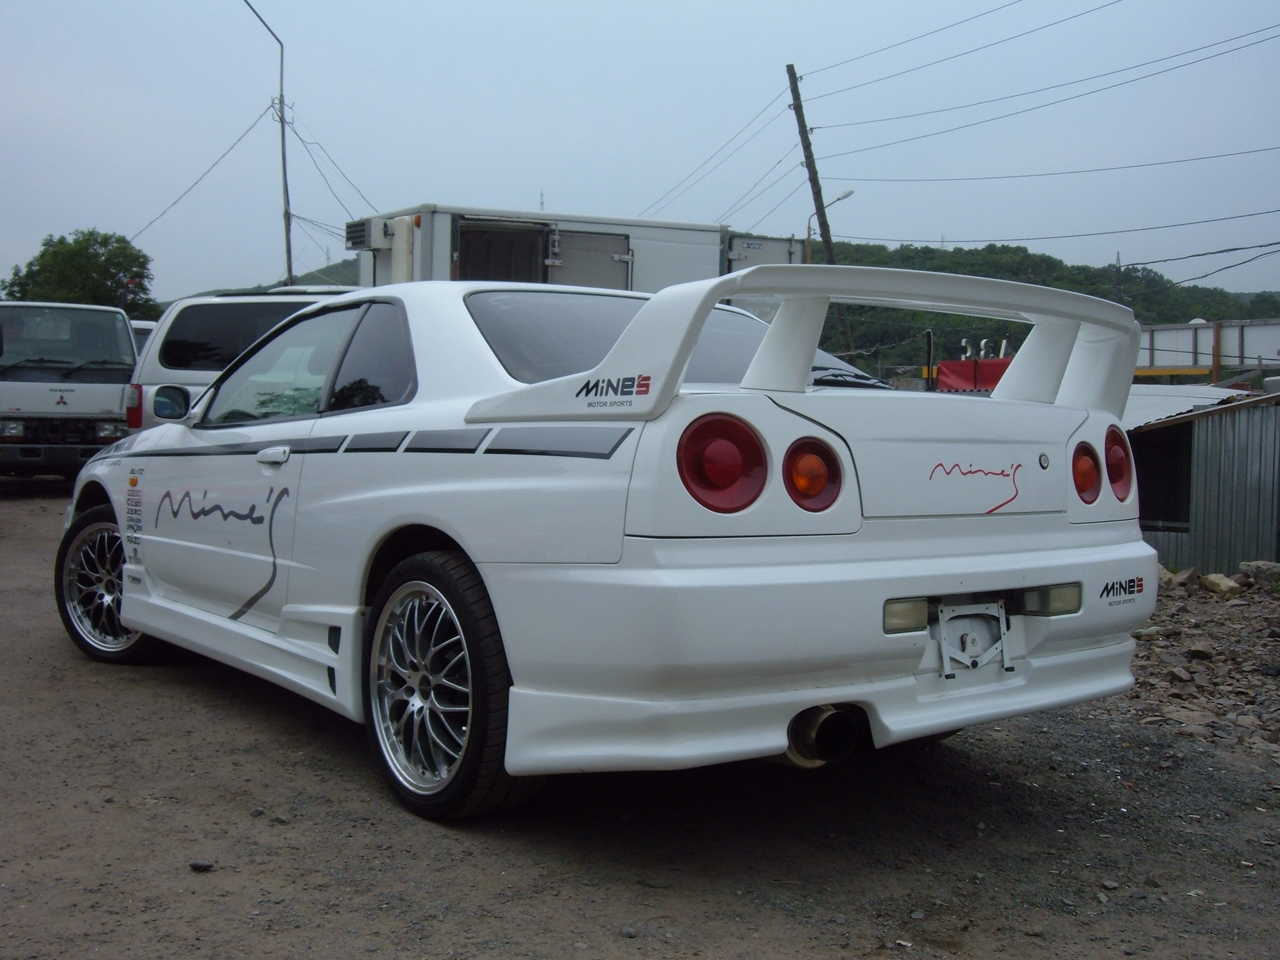 used 1999 nissan skyline photos 2500cc gasoline manual for sale. Black Bedroom Furniture Sets. Home Design Ideas